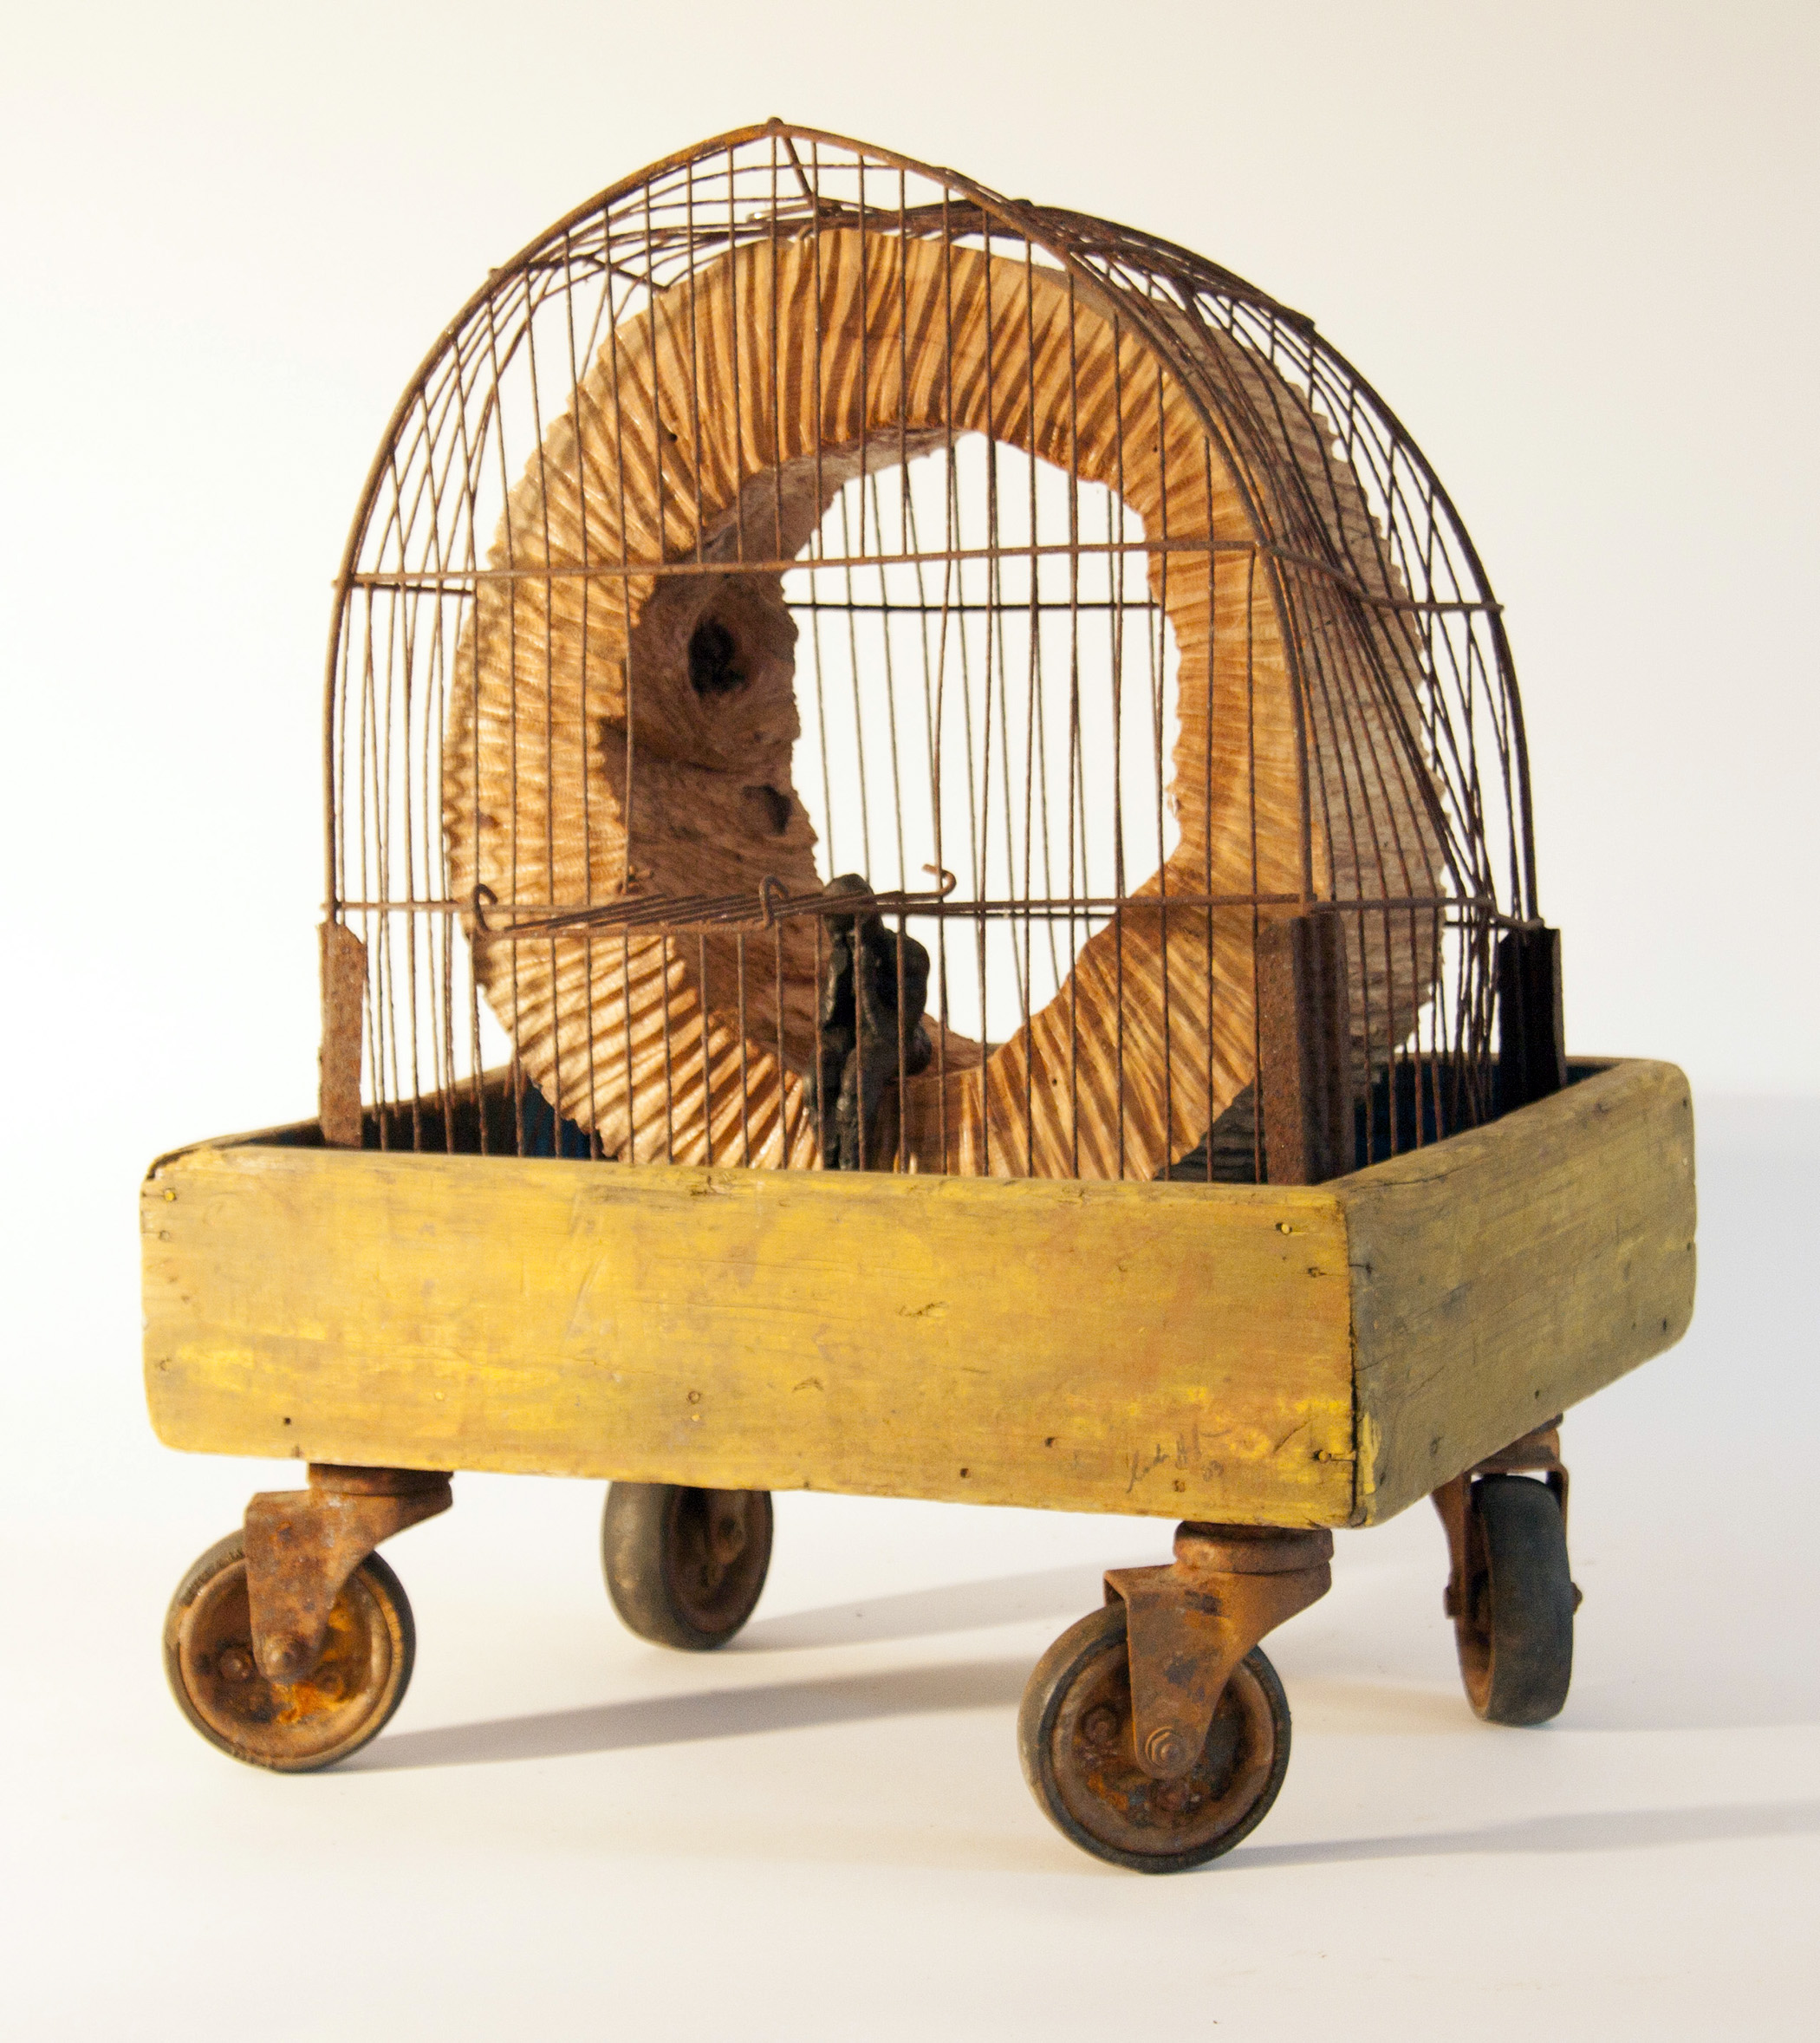 Birdcage , bronze figure, wood, and found objects, LH